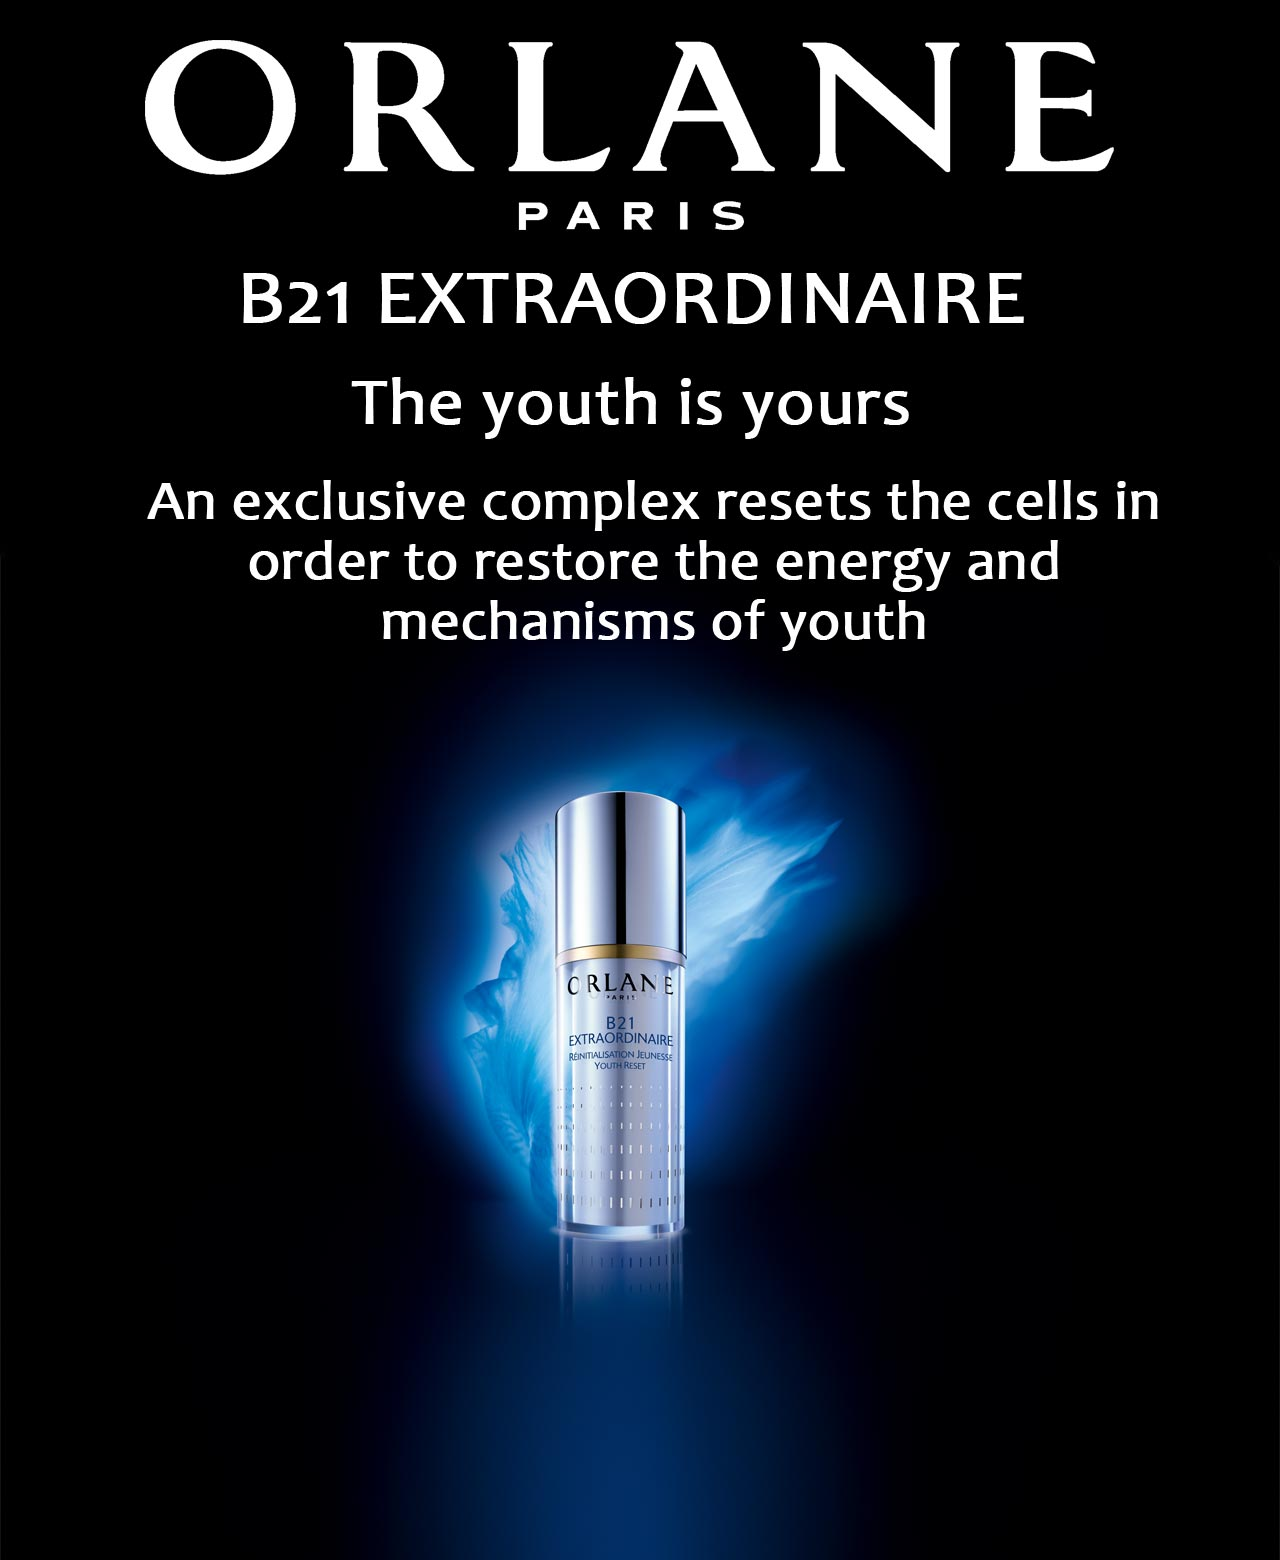 Orlane B21 Extraordinaire The youth is yours